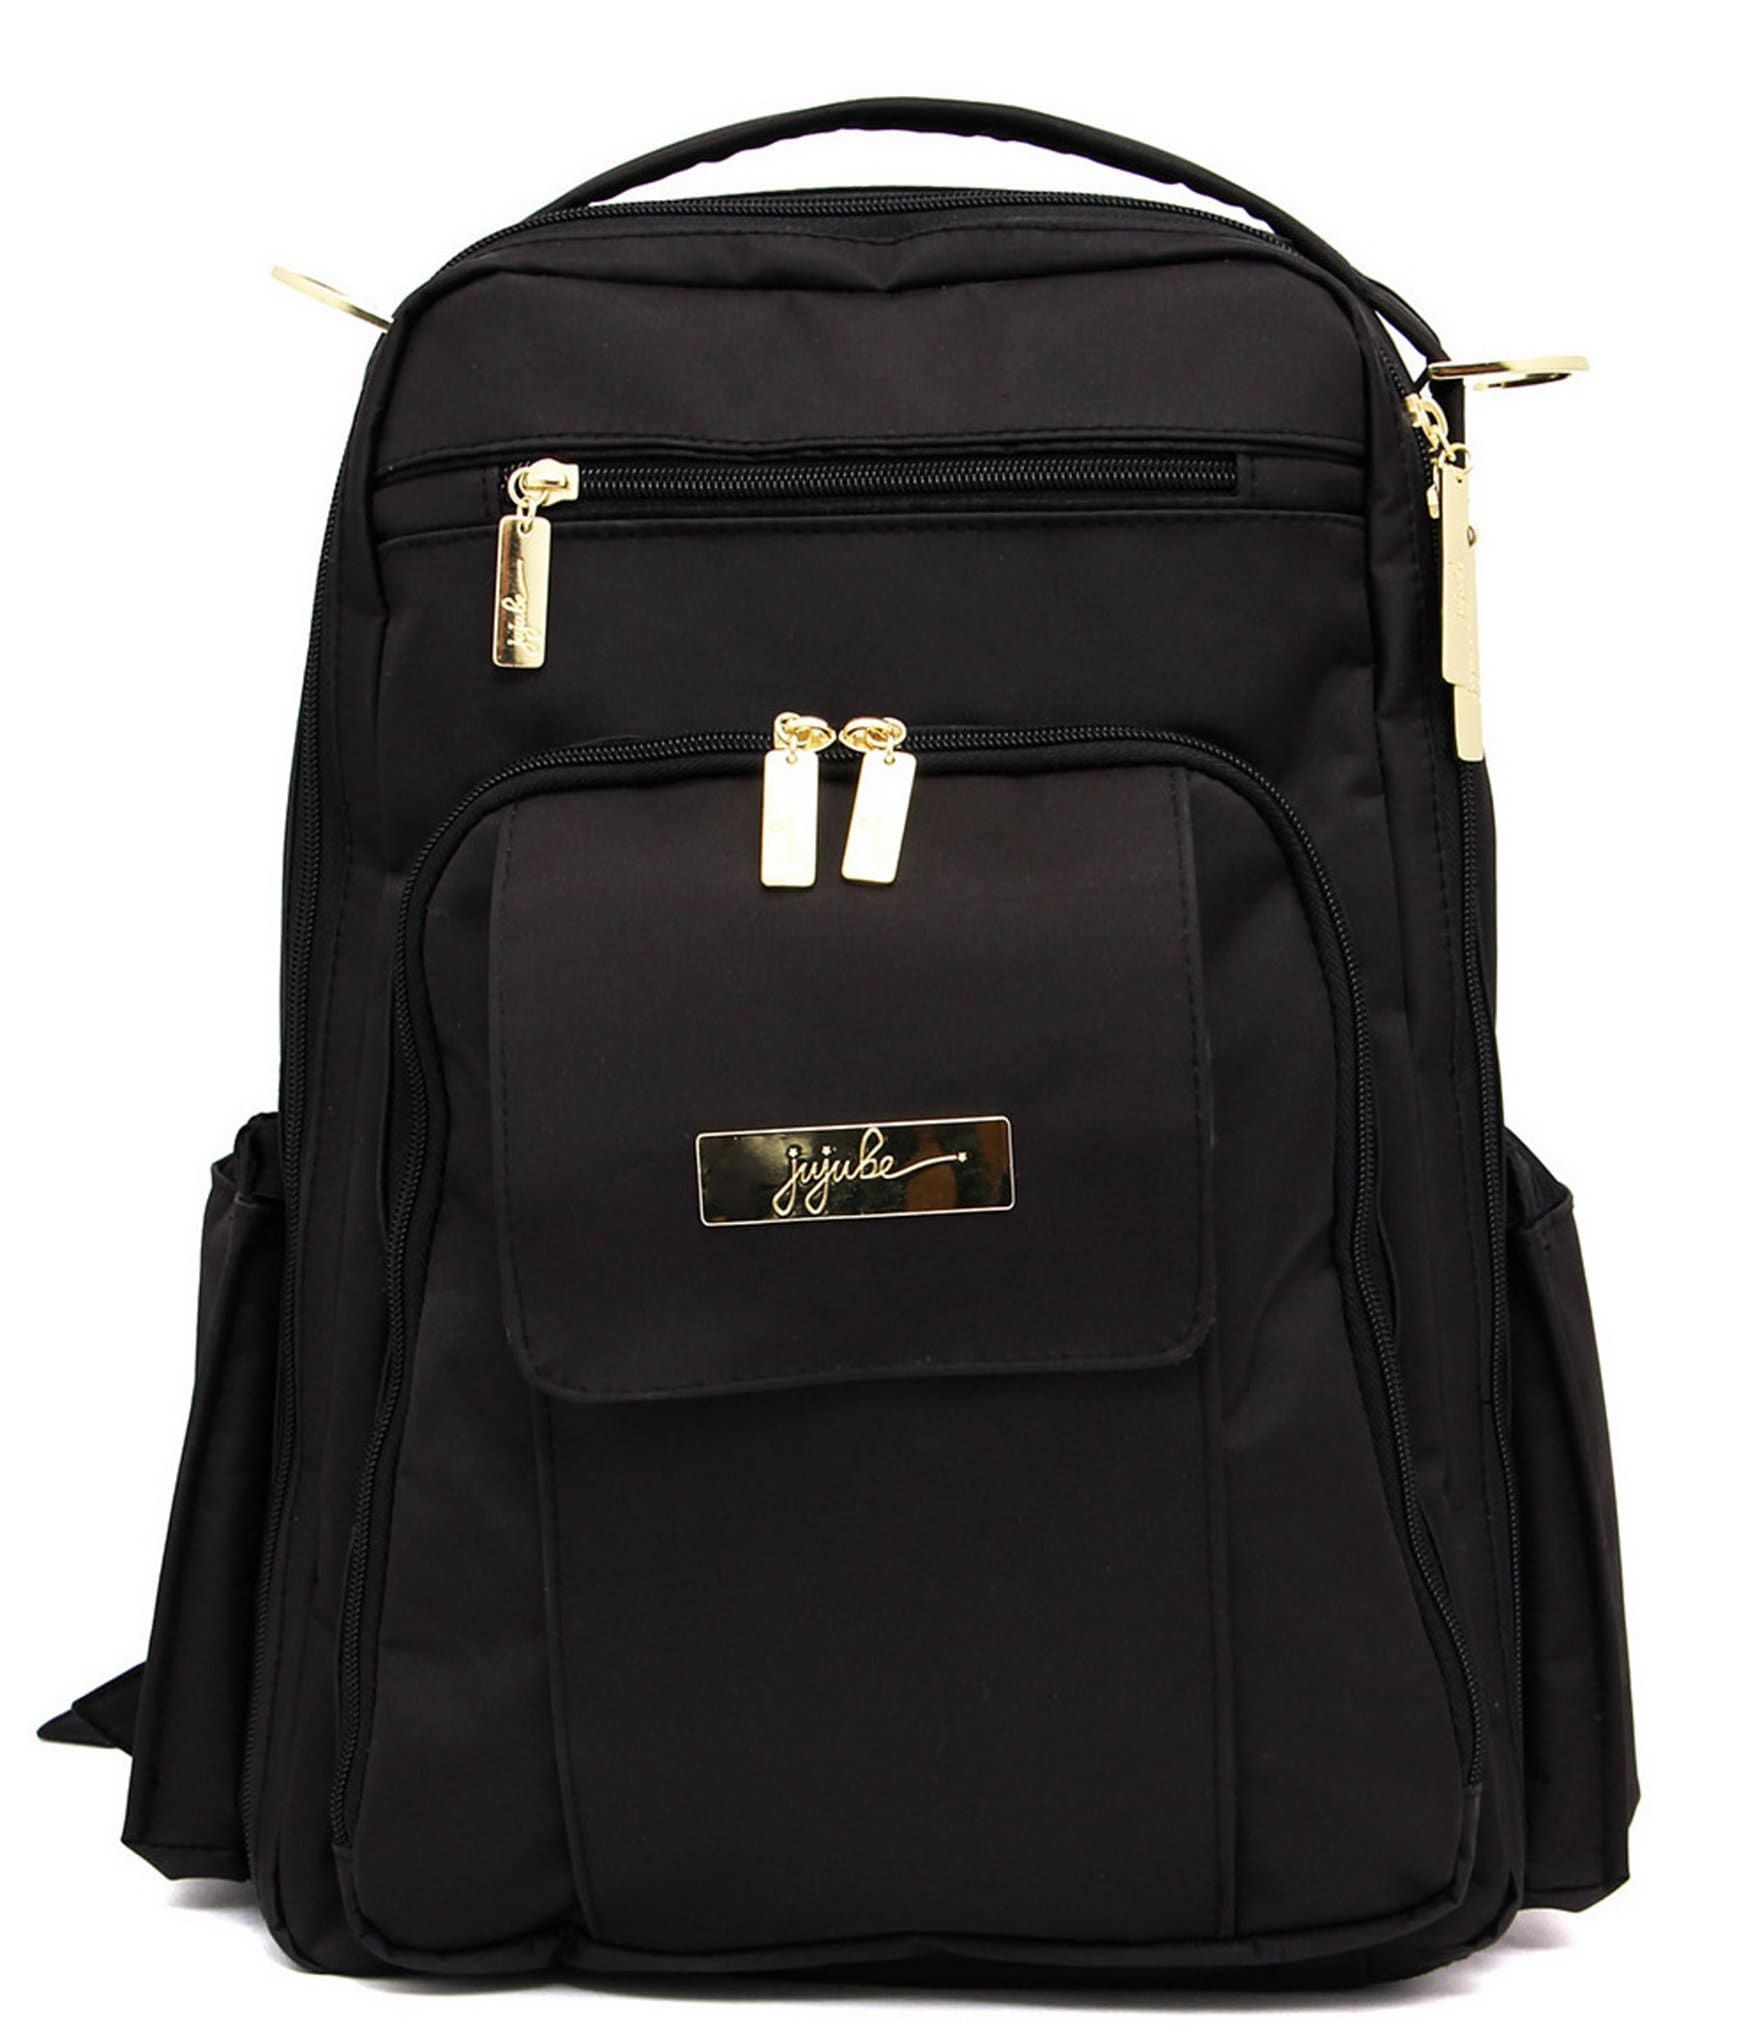 ju ju be be right back solid backpack diaper bag dillards. Black Bedroom Furniture Sets. Home Design Ideas